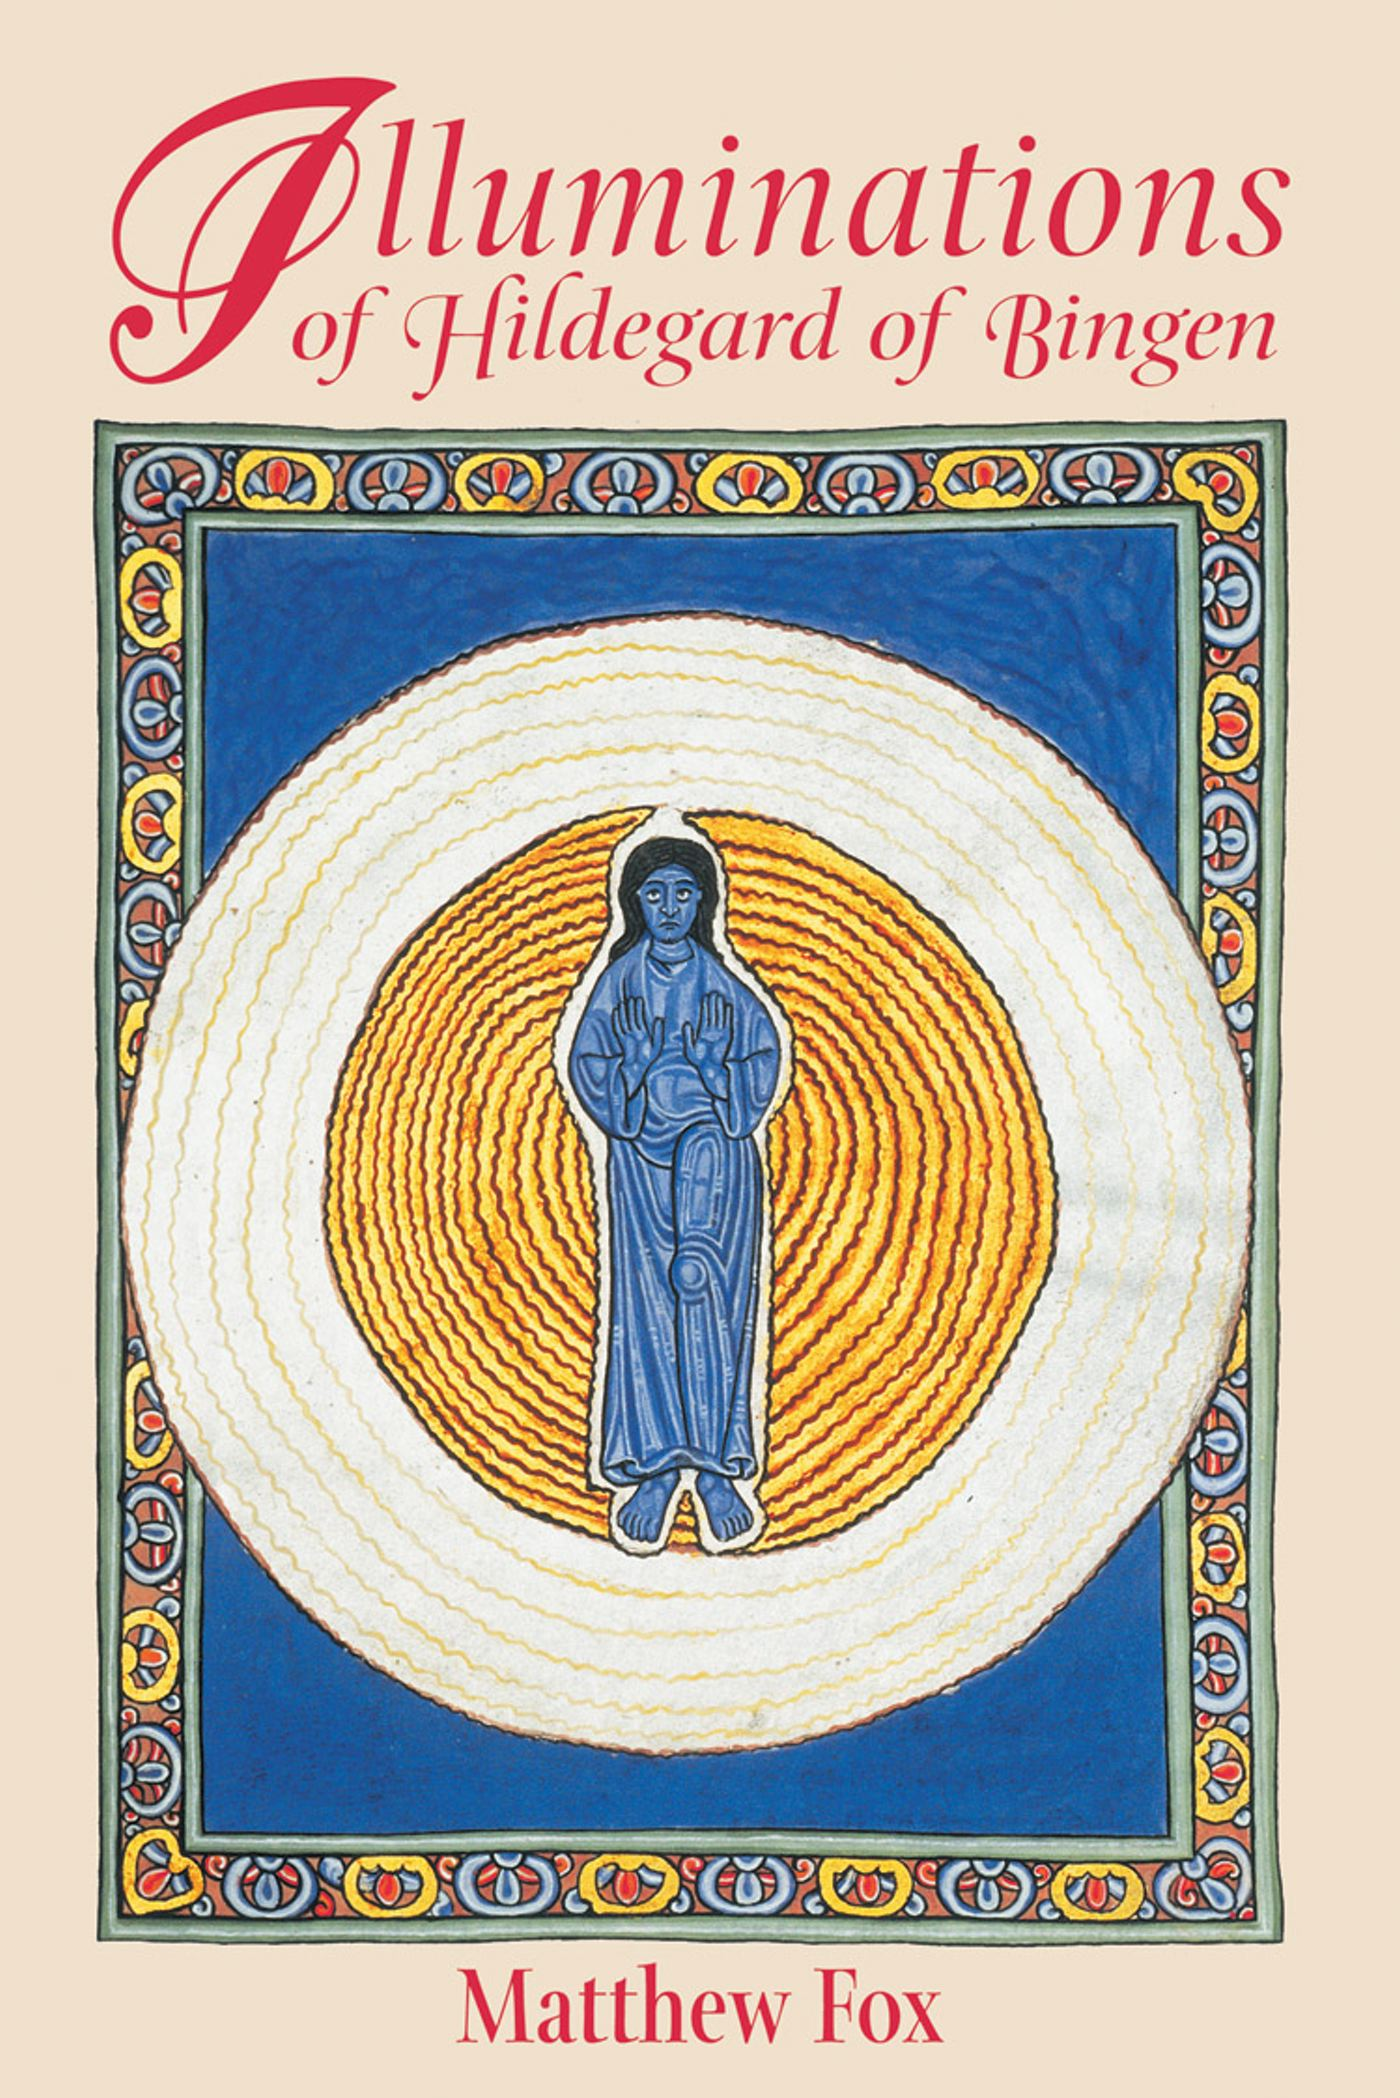 Illuminations of hildegard of bingen 9781879181977 hr